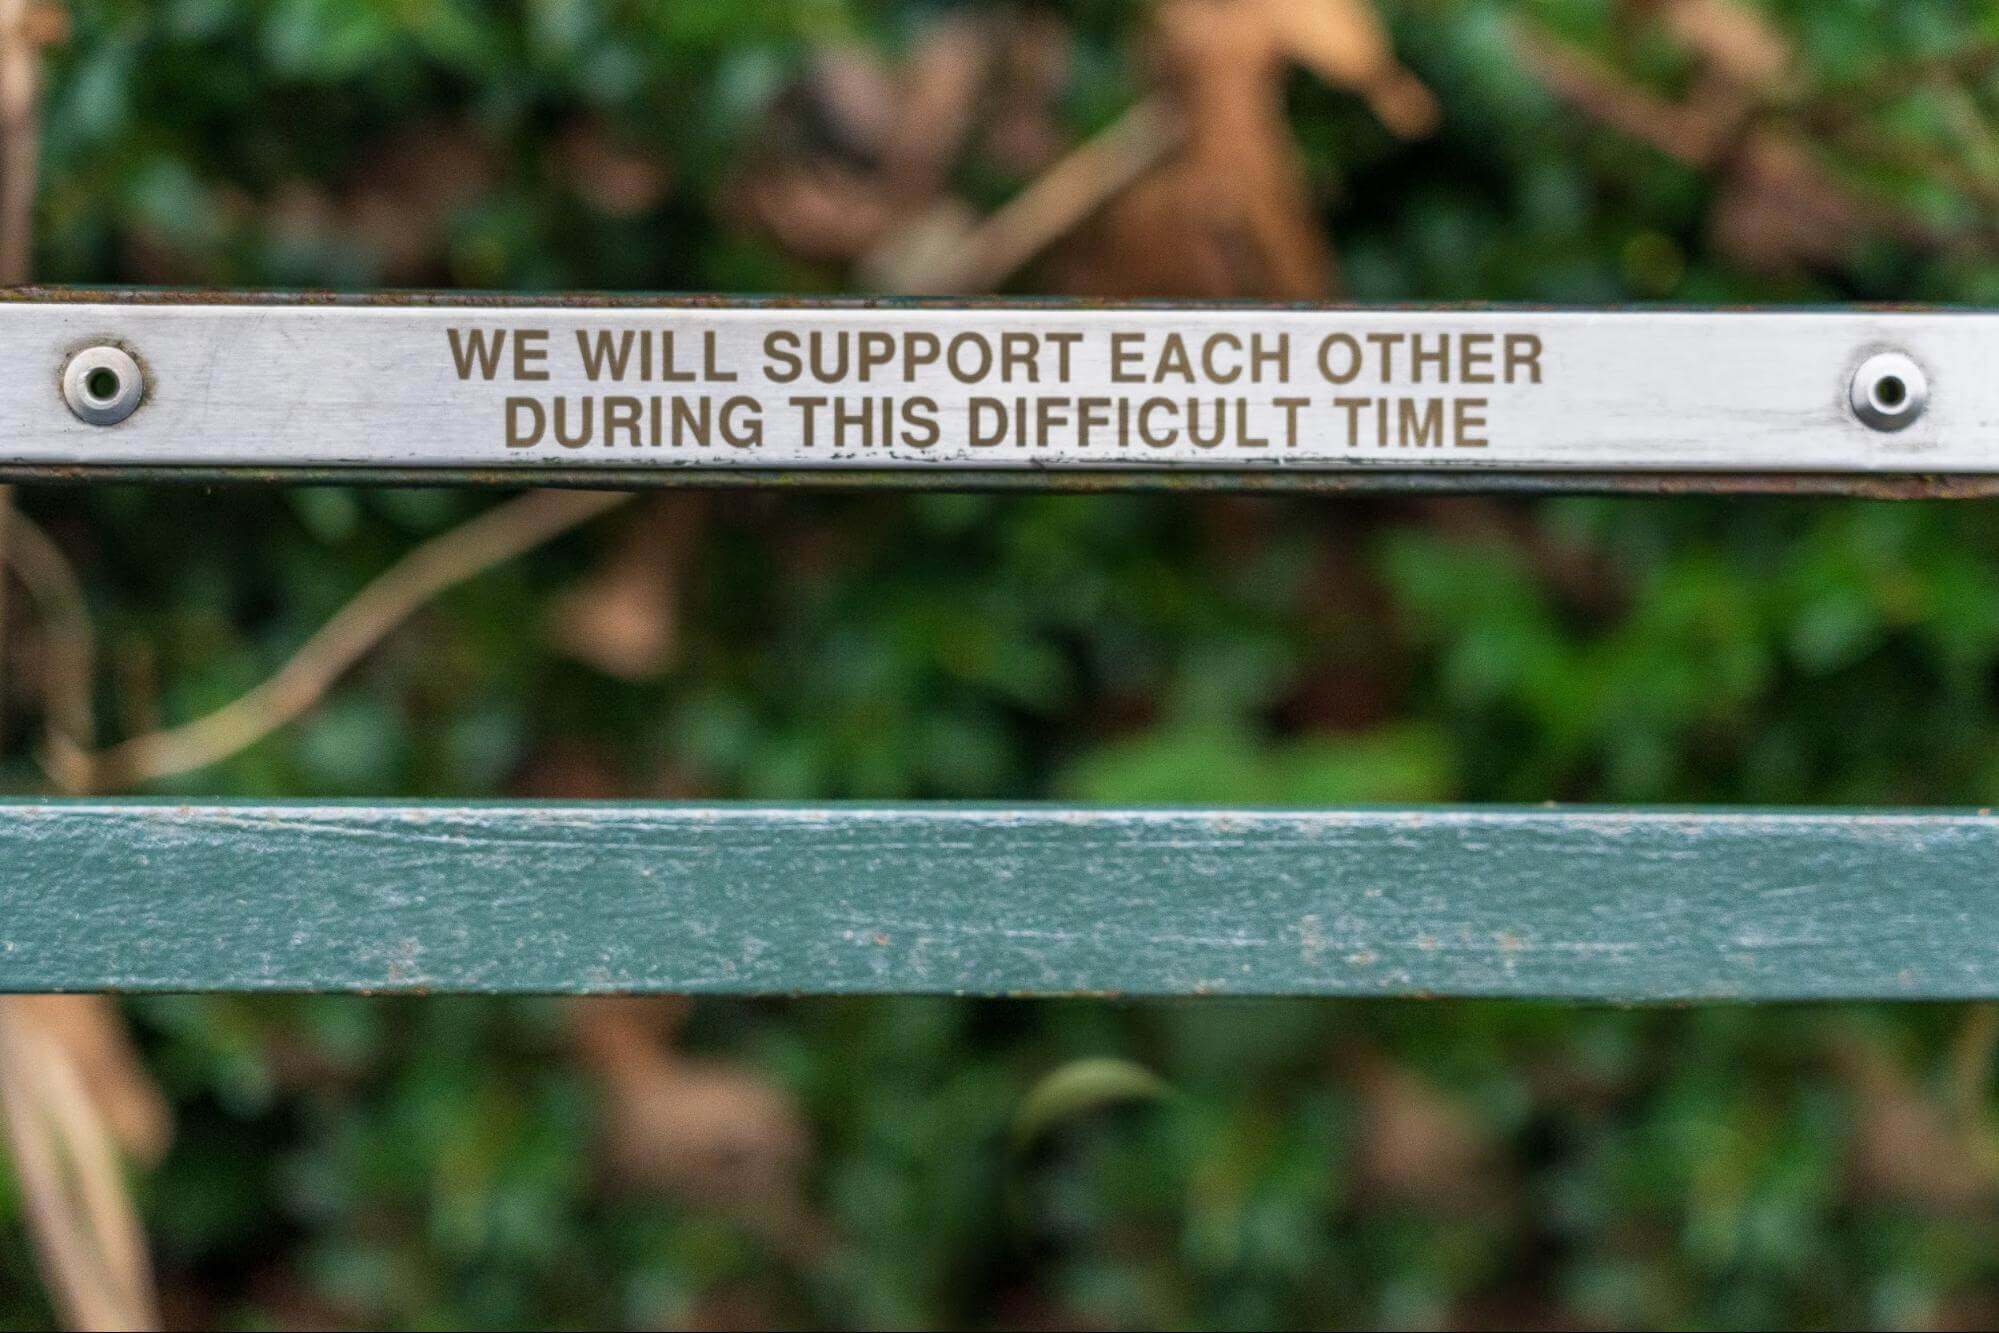 we will support each other